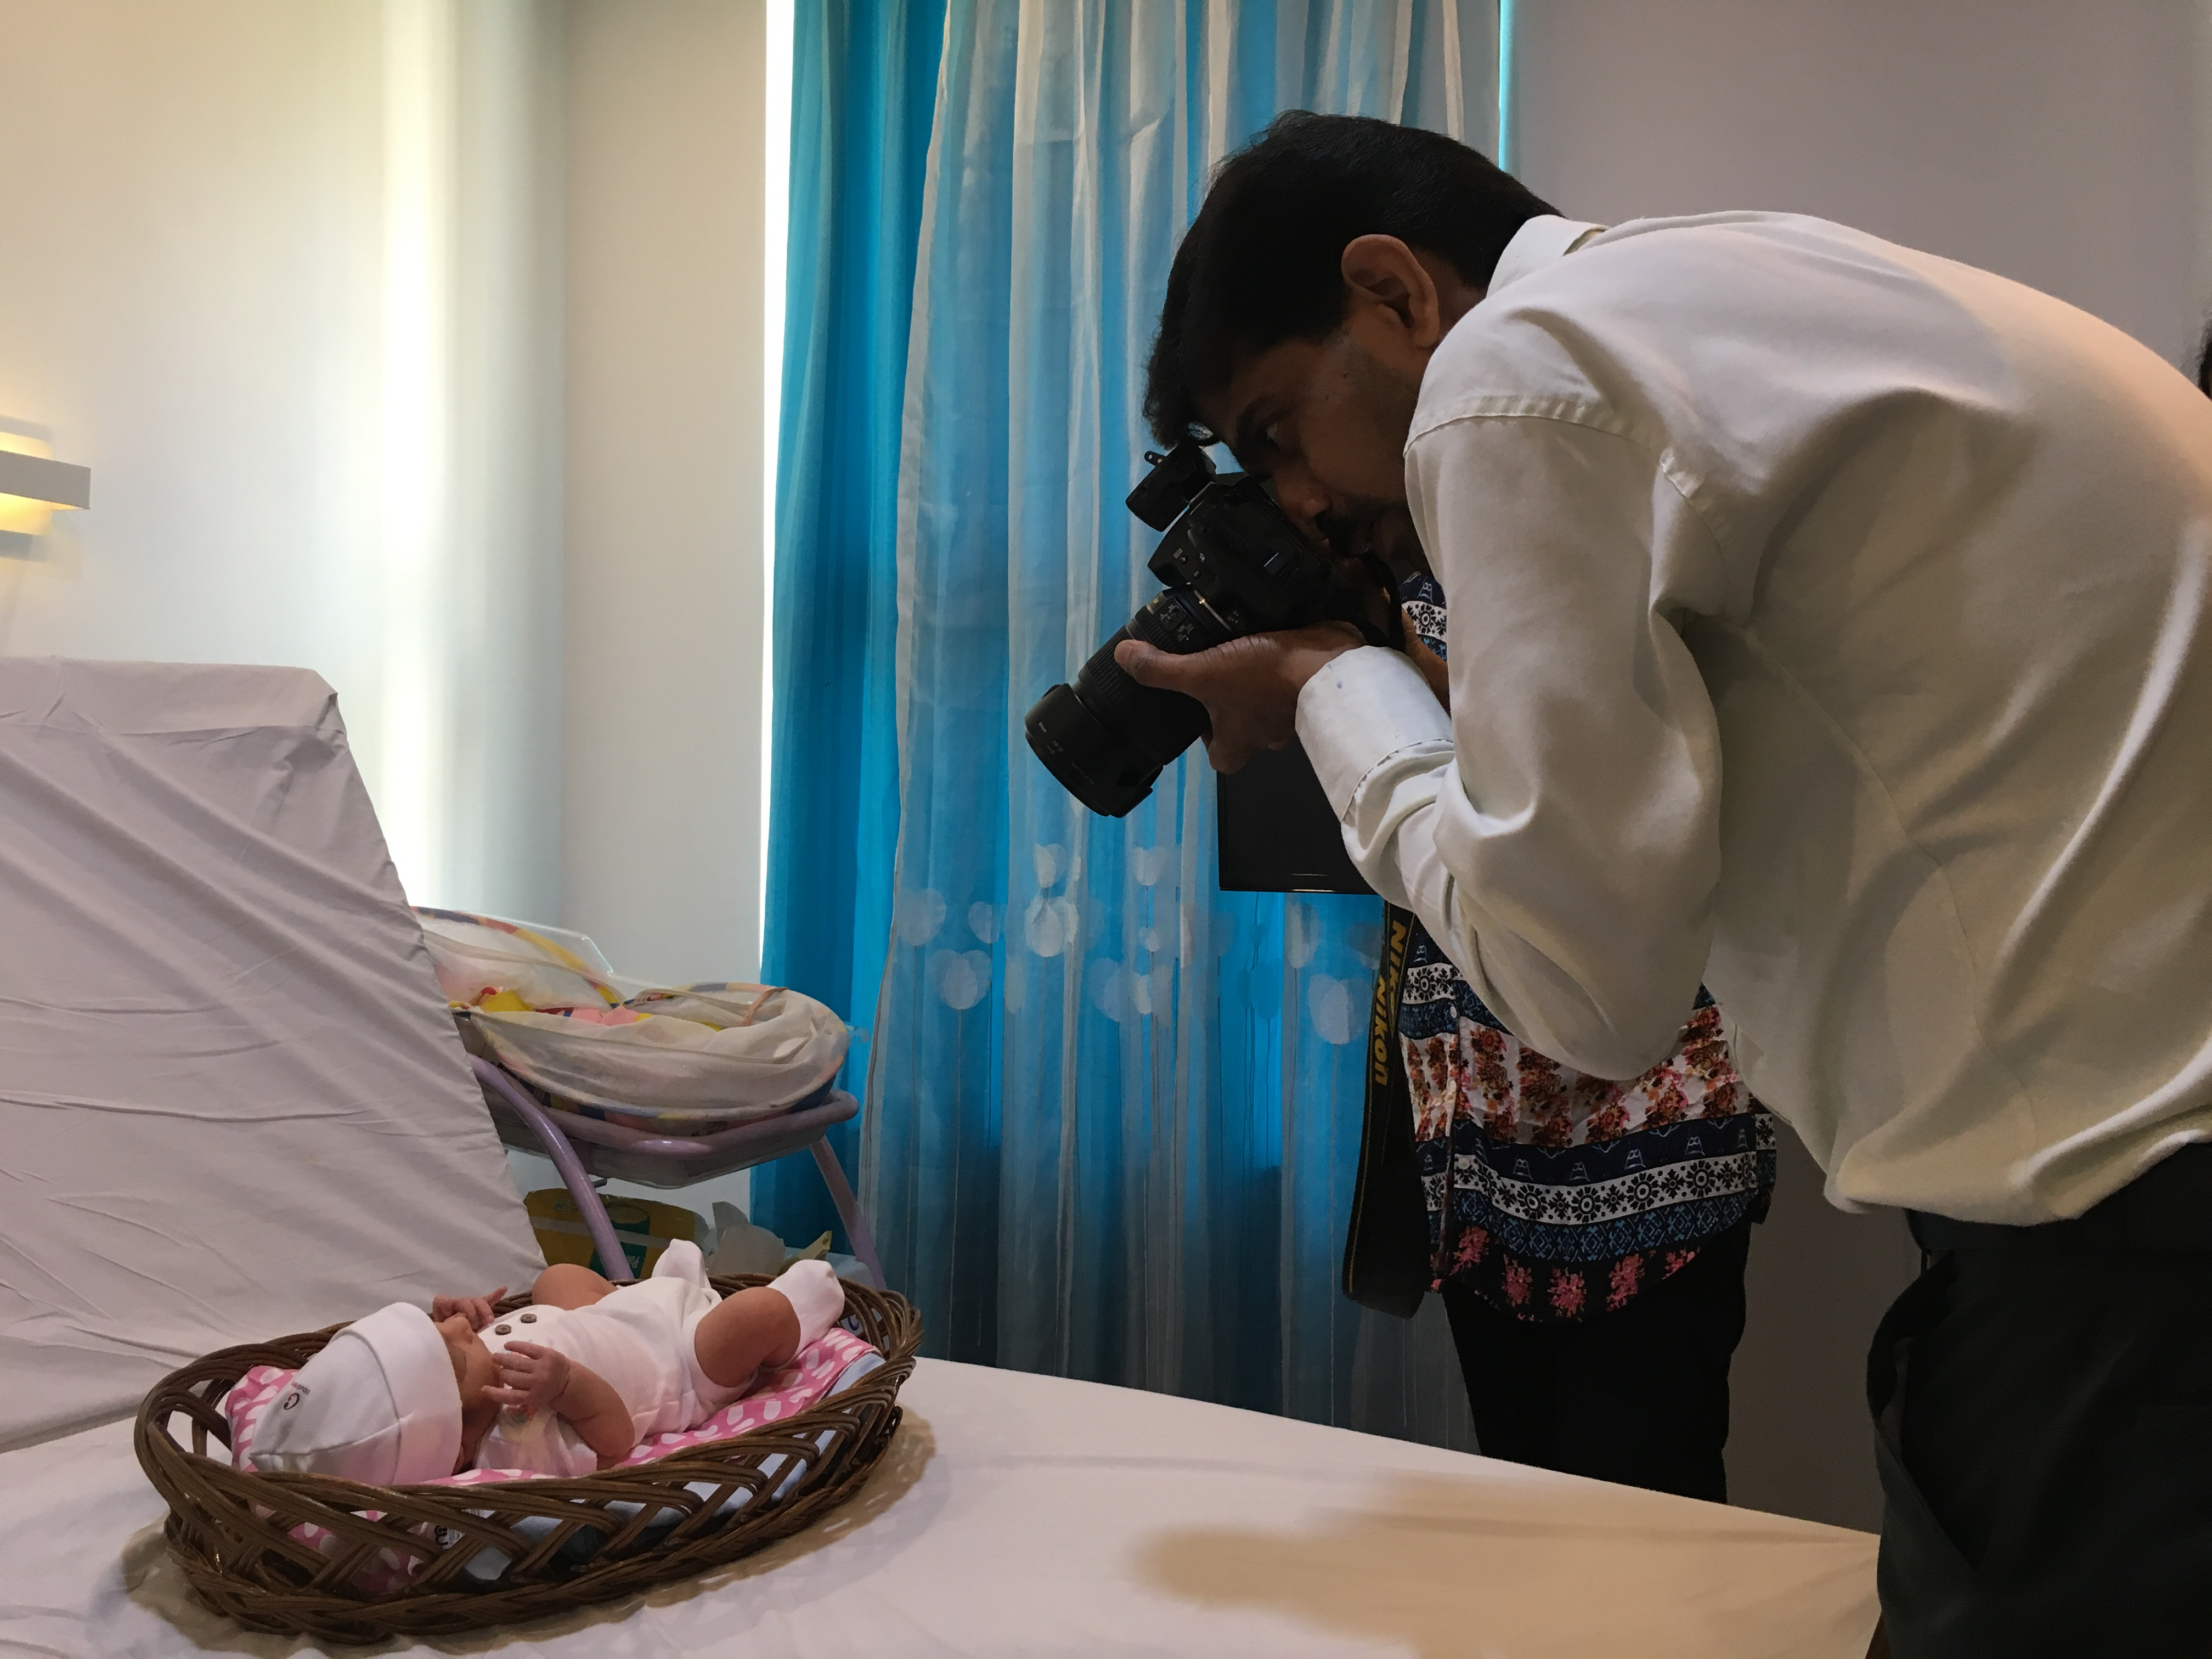 Baby Aasavari's first photo shoot. (Photo: Priyanka Vora)